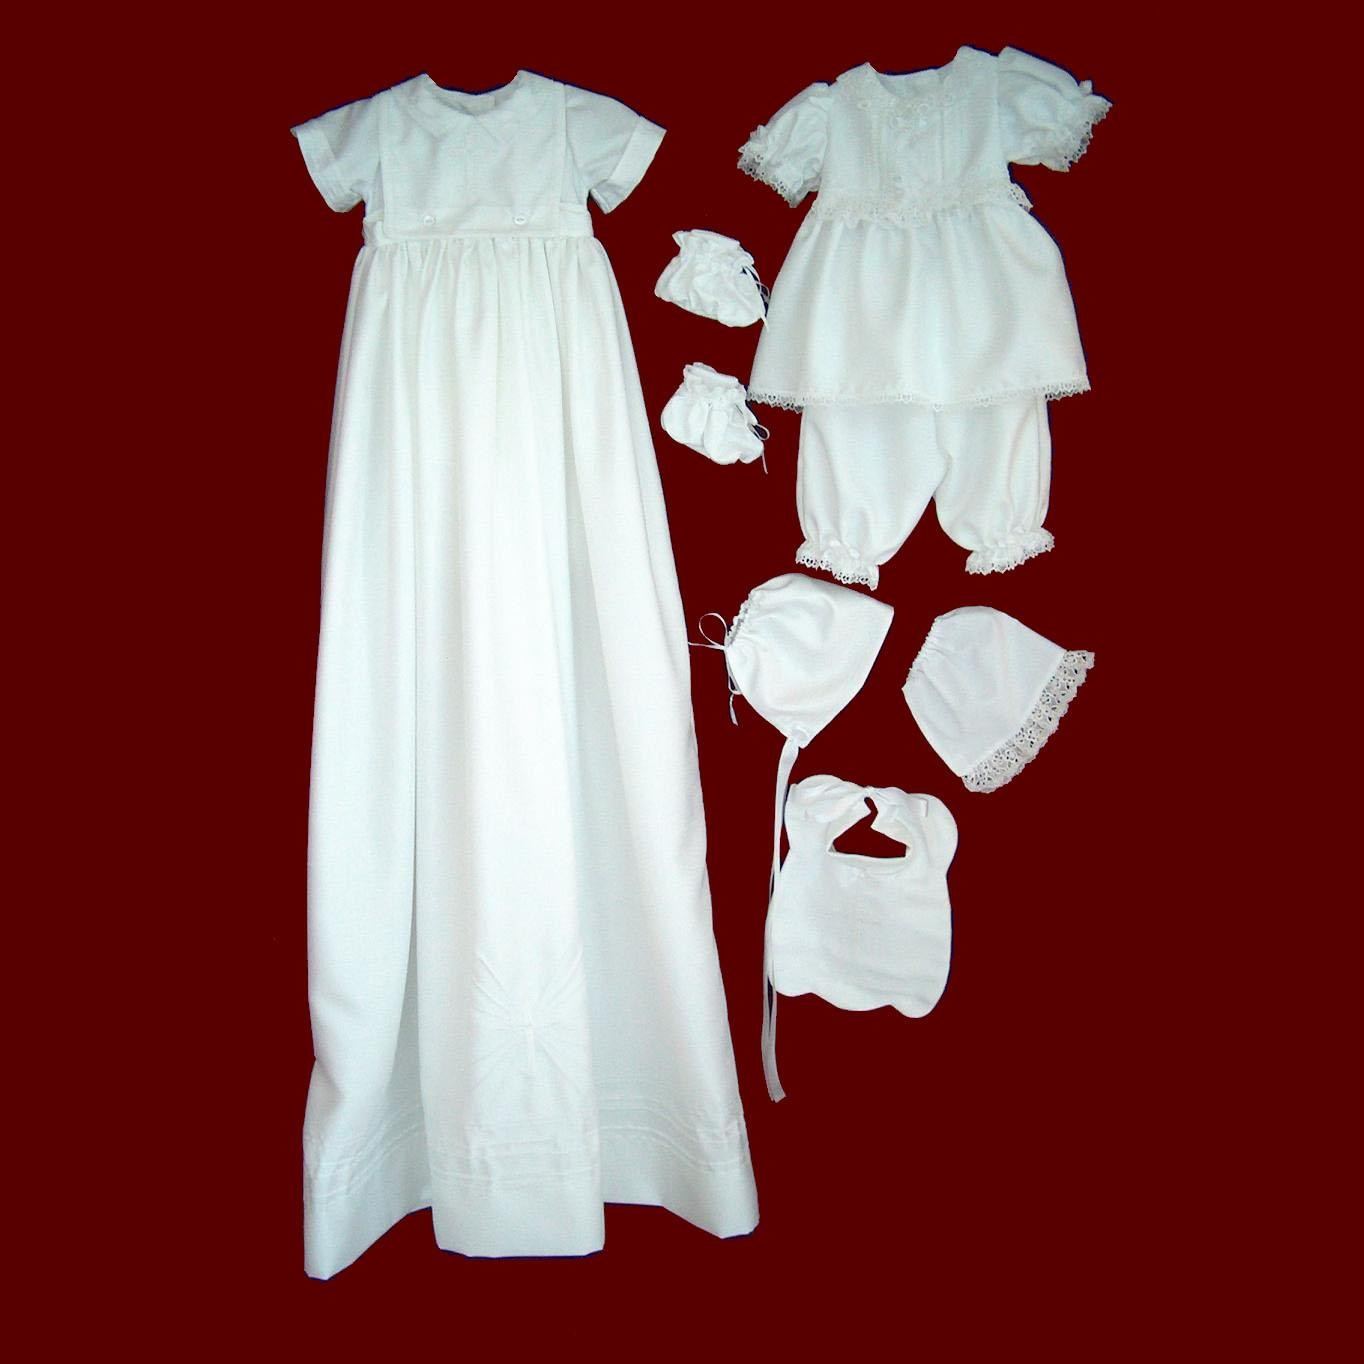 Shantung Boy/Girl Christening Ensemble with Detachable Gown & Accessories